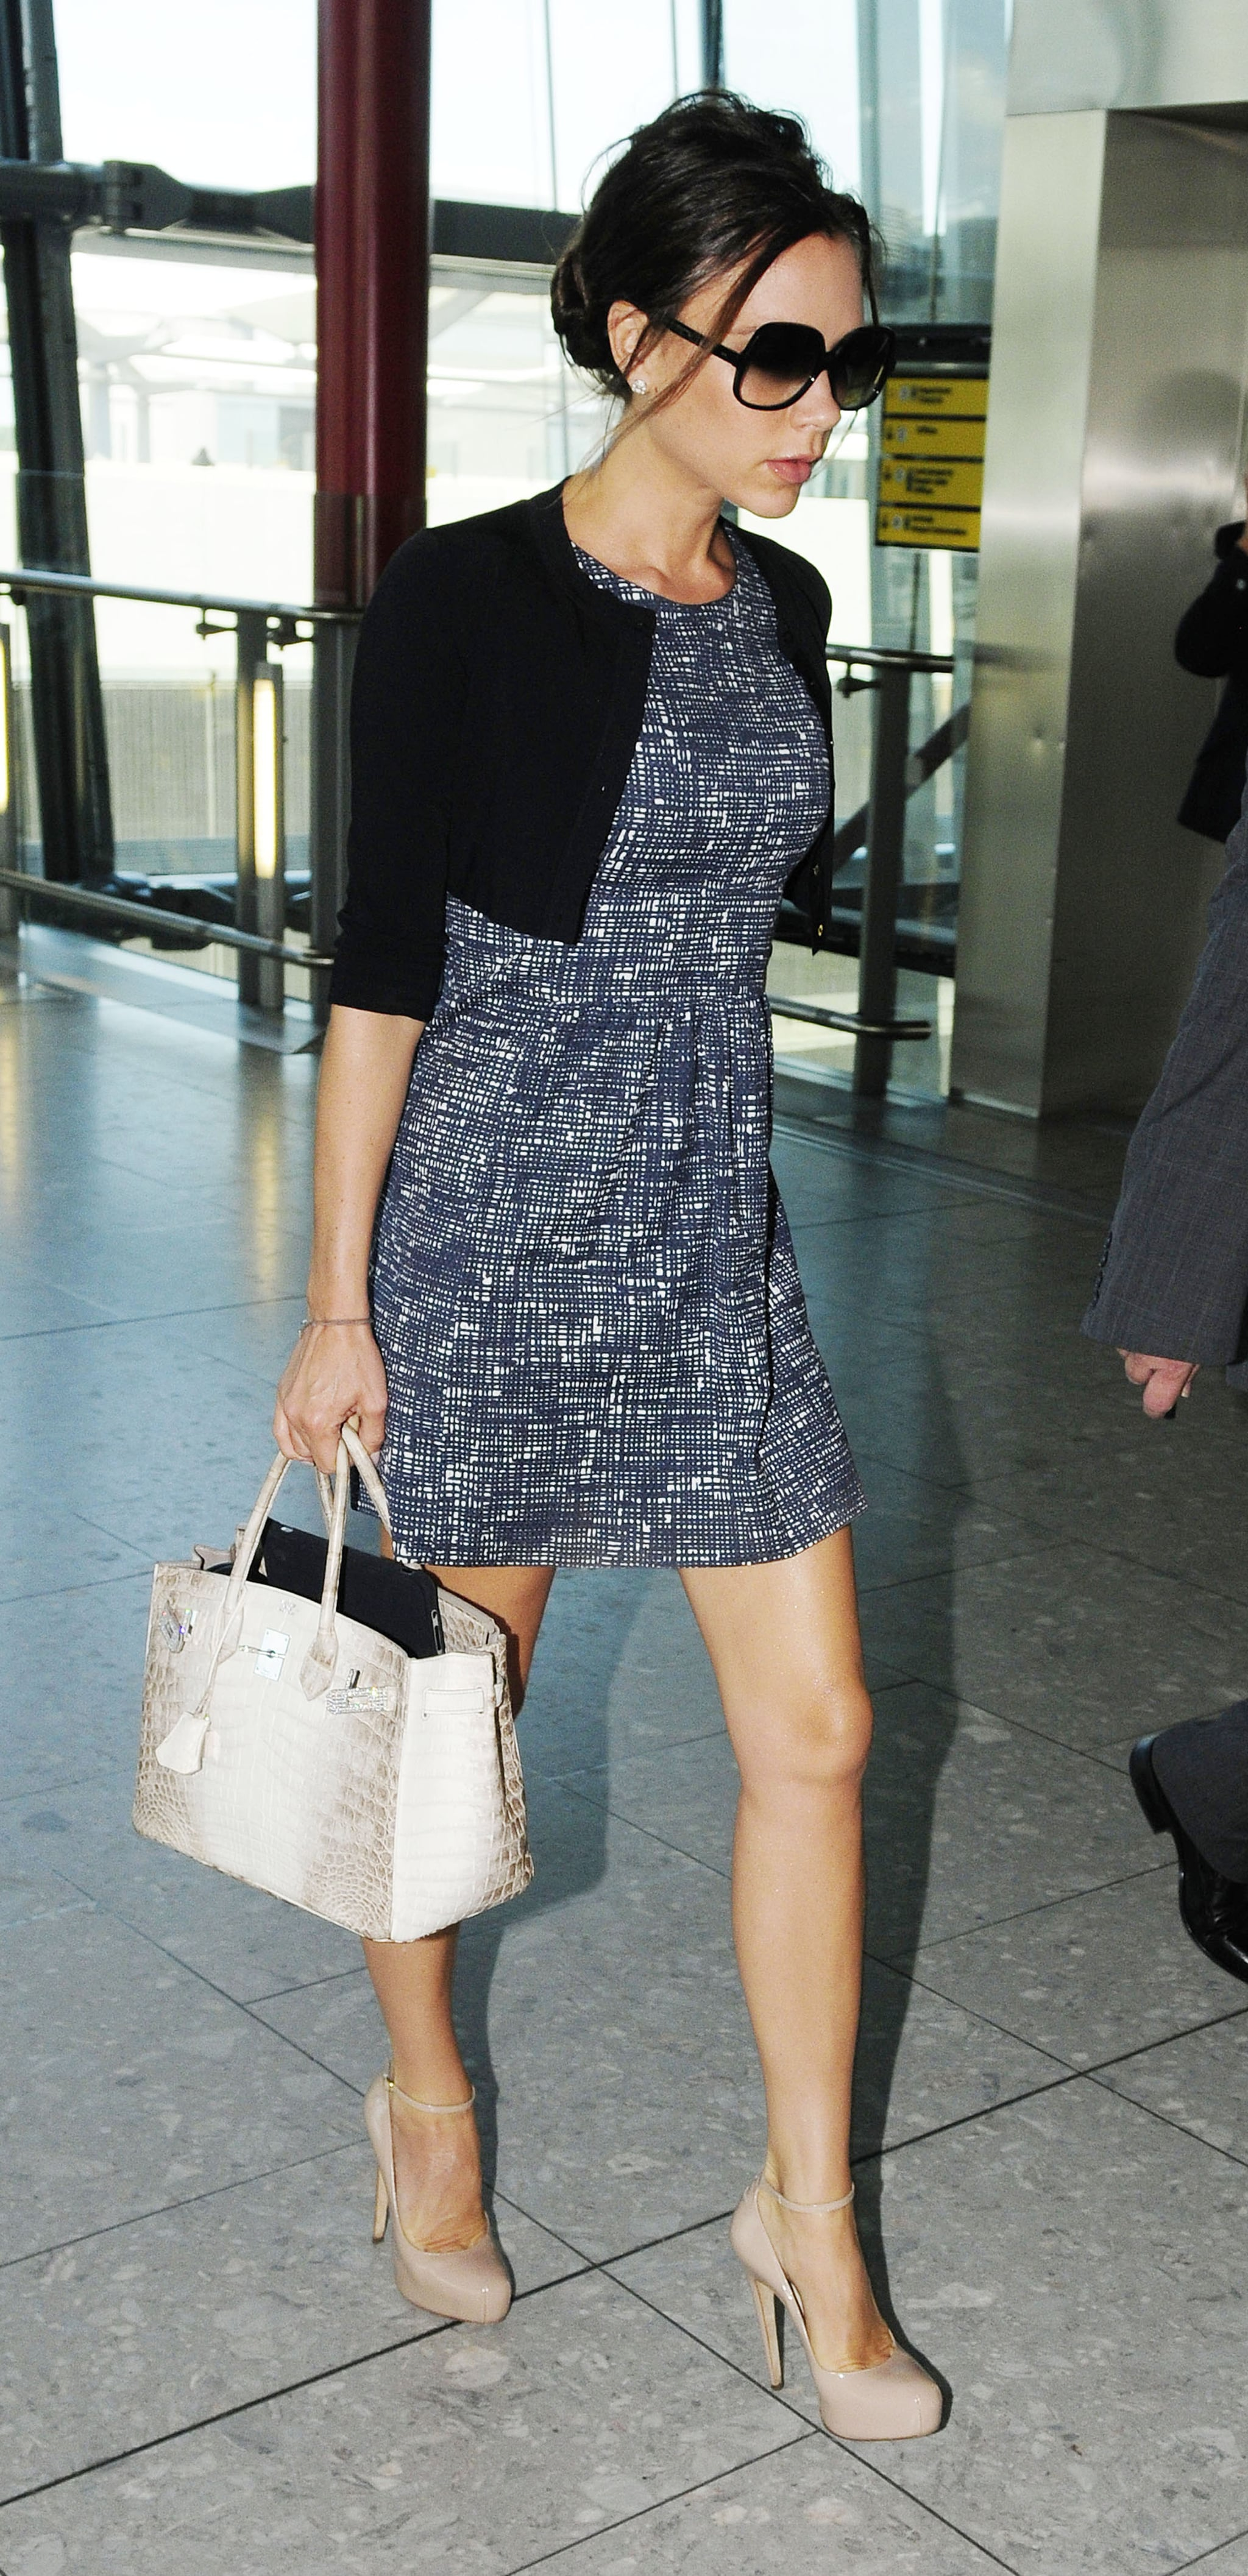 Pictures of Victoria Beckham at Heathrow Airport After